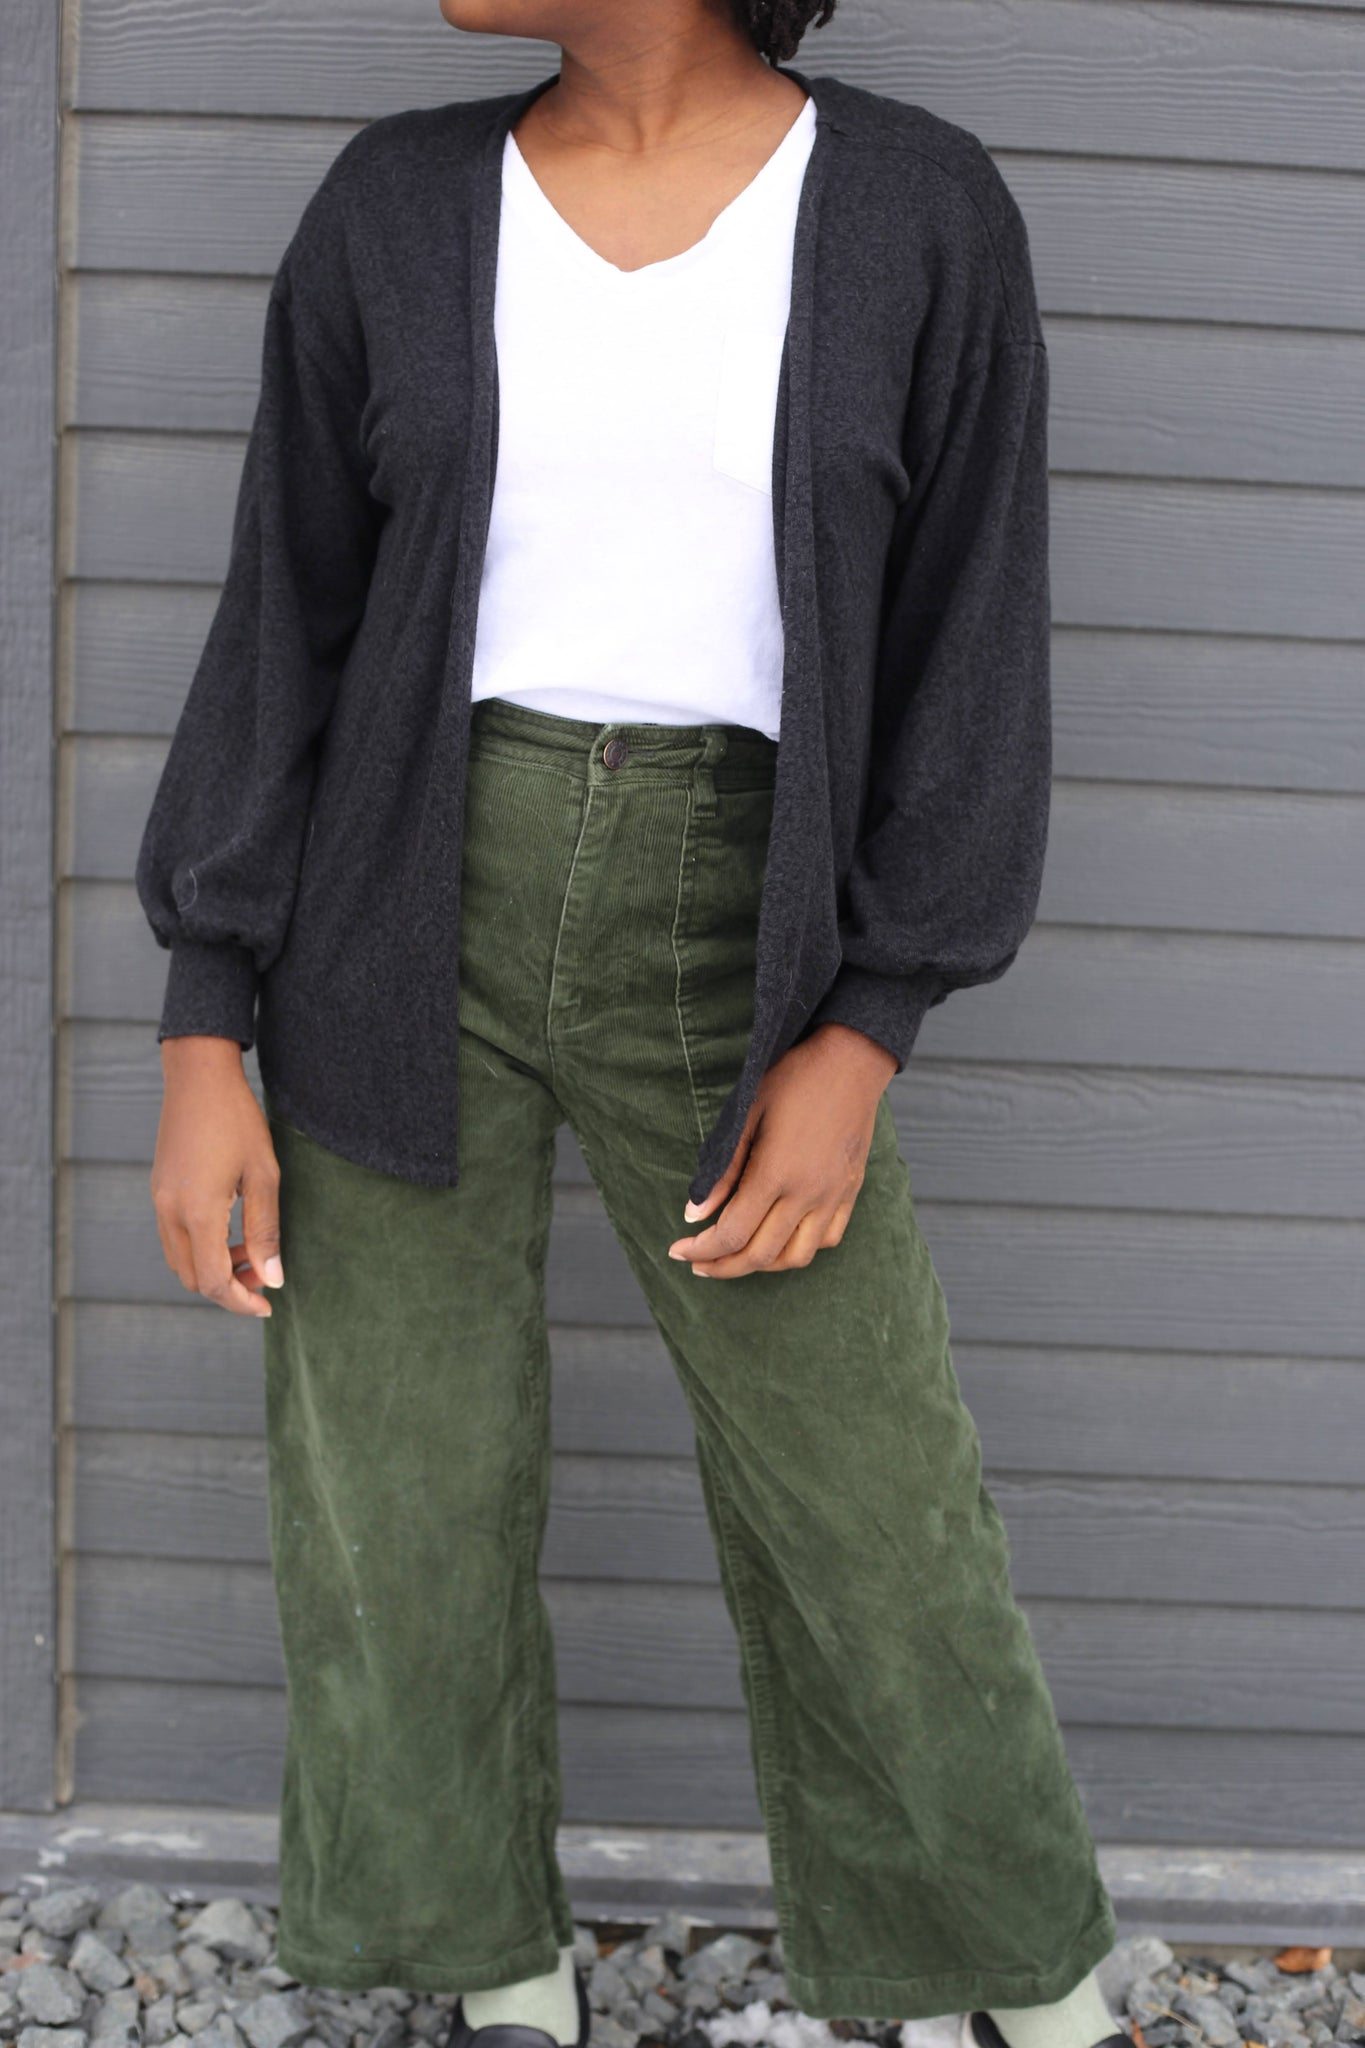 White T-Shirt and olive corduroy pants